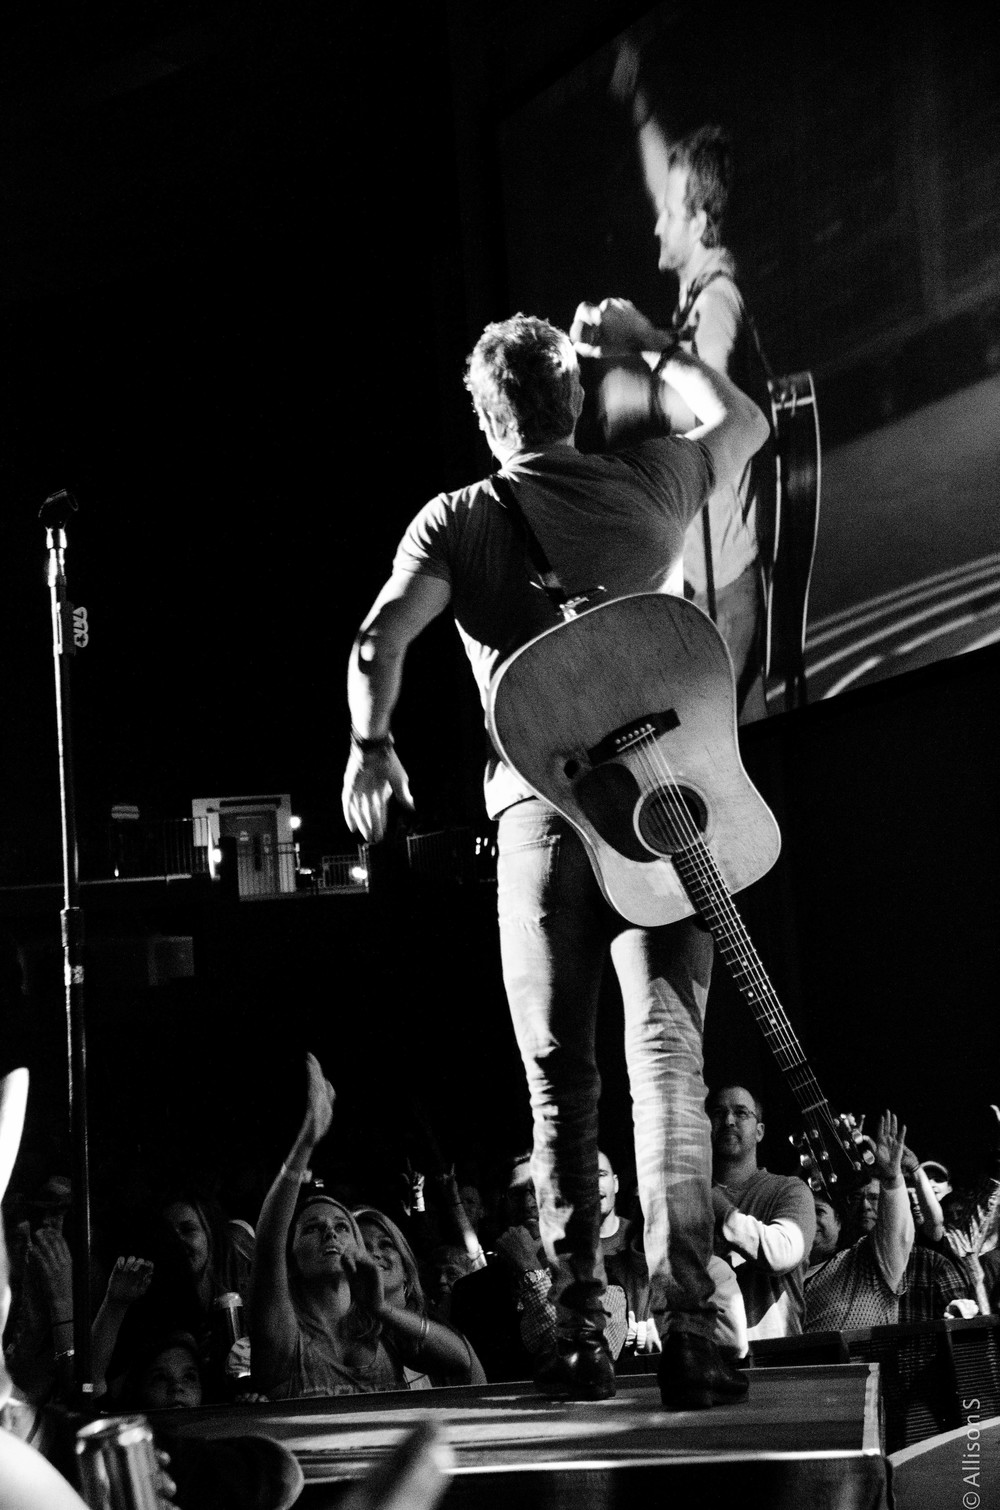 dierks-bentley_14221833110_o.jpg